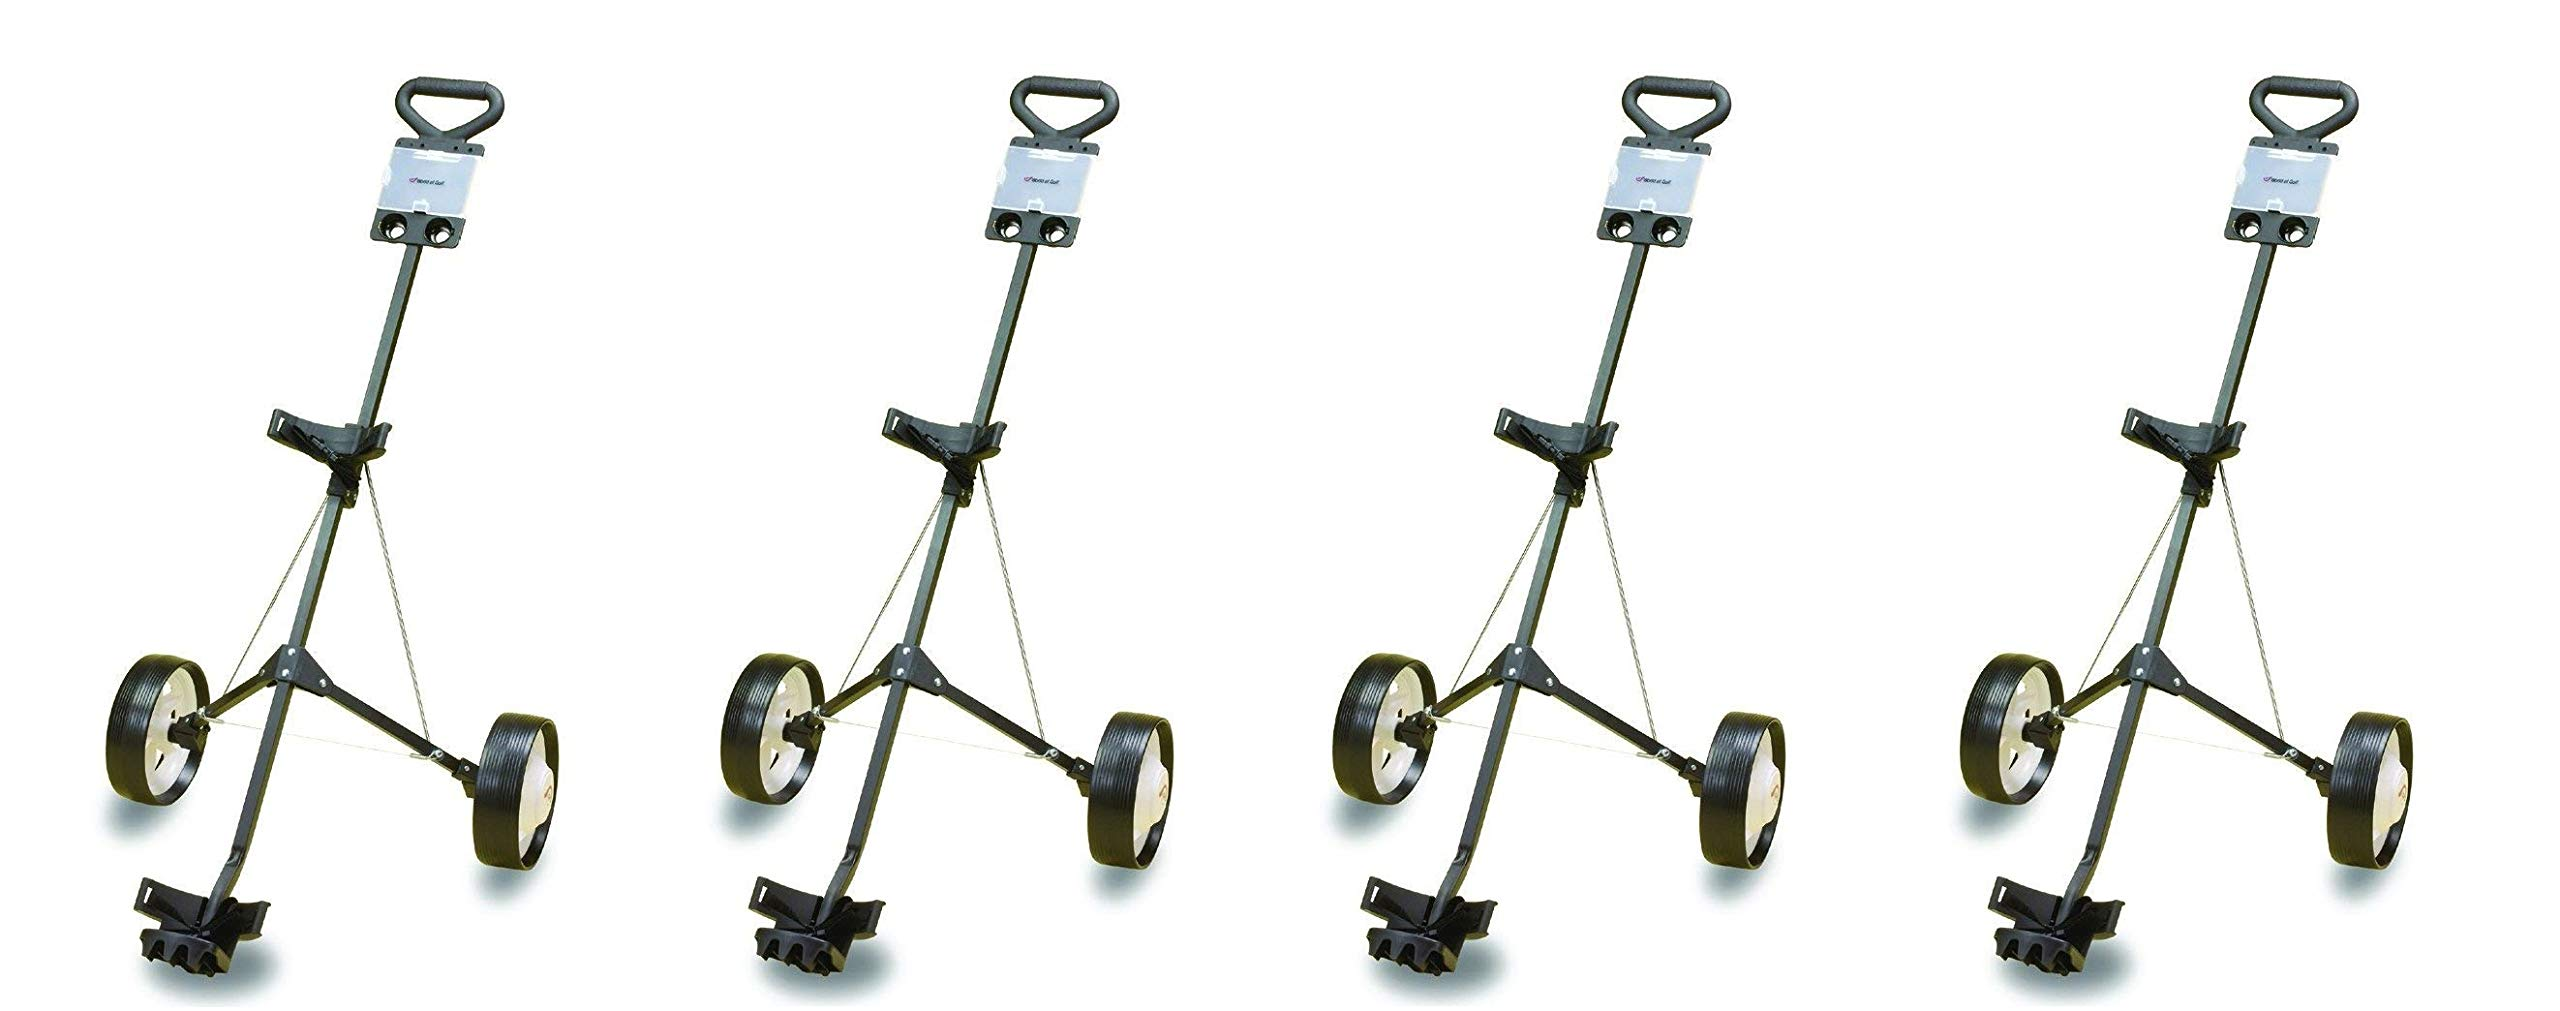 JEF WORLD OF GOLF Deluxe Steel Golf Cart (4-Pack)